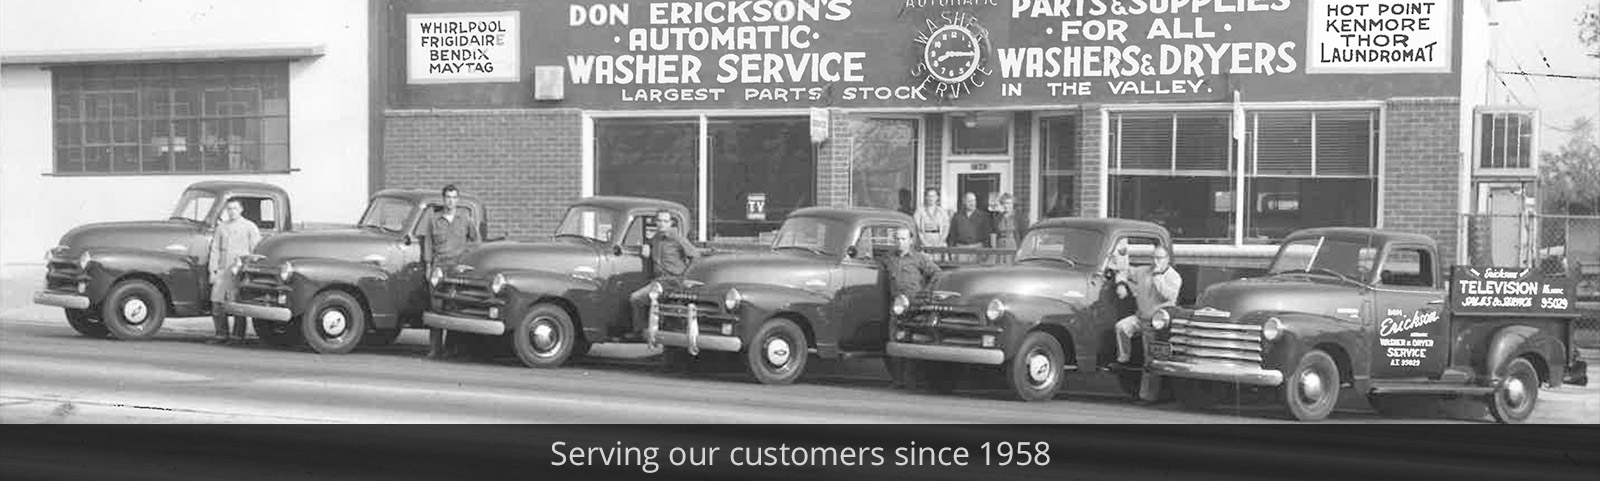 Serving our customers since 1958